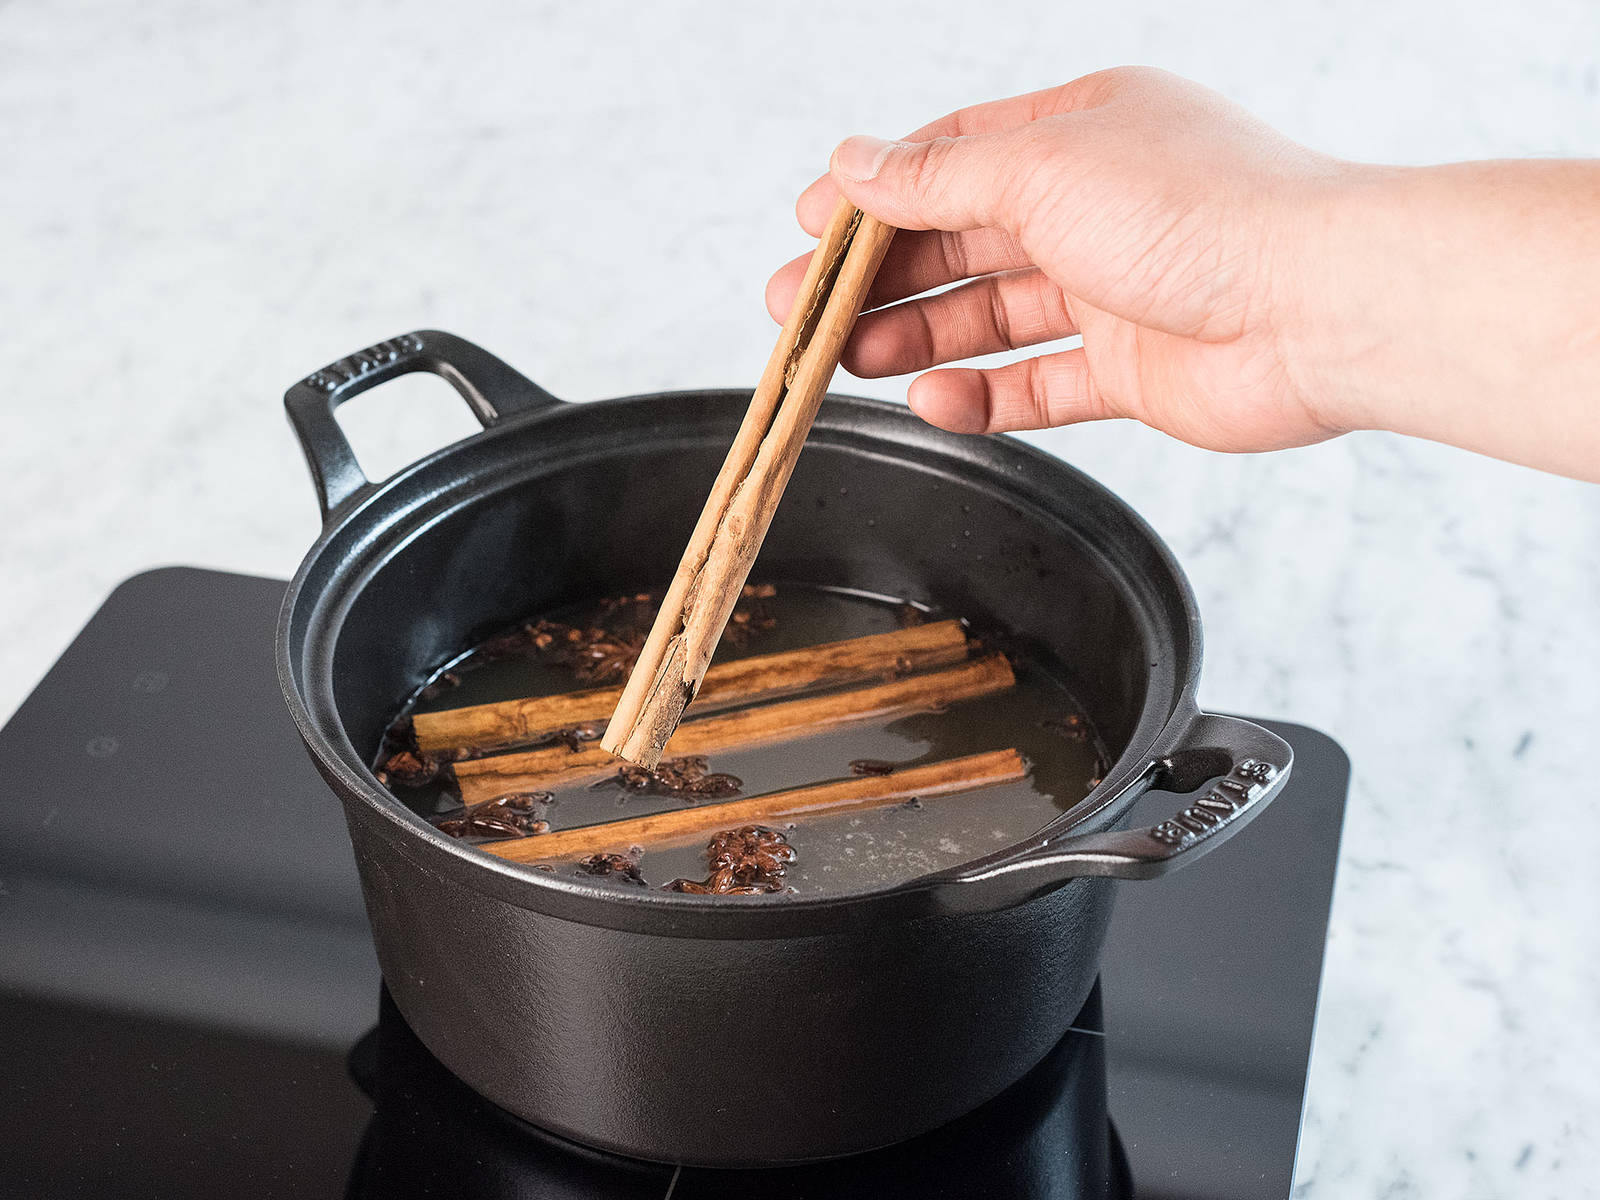 Add apple cider, cloves, star anise, cinnamon sticks, and vodka to a pot and warm on a medium heat.